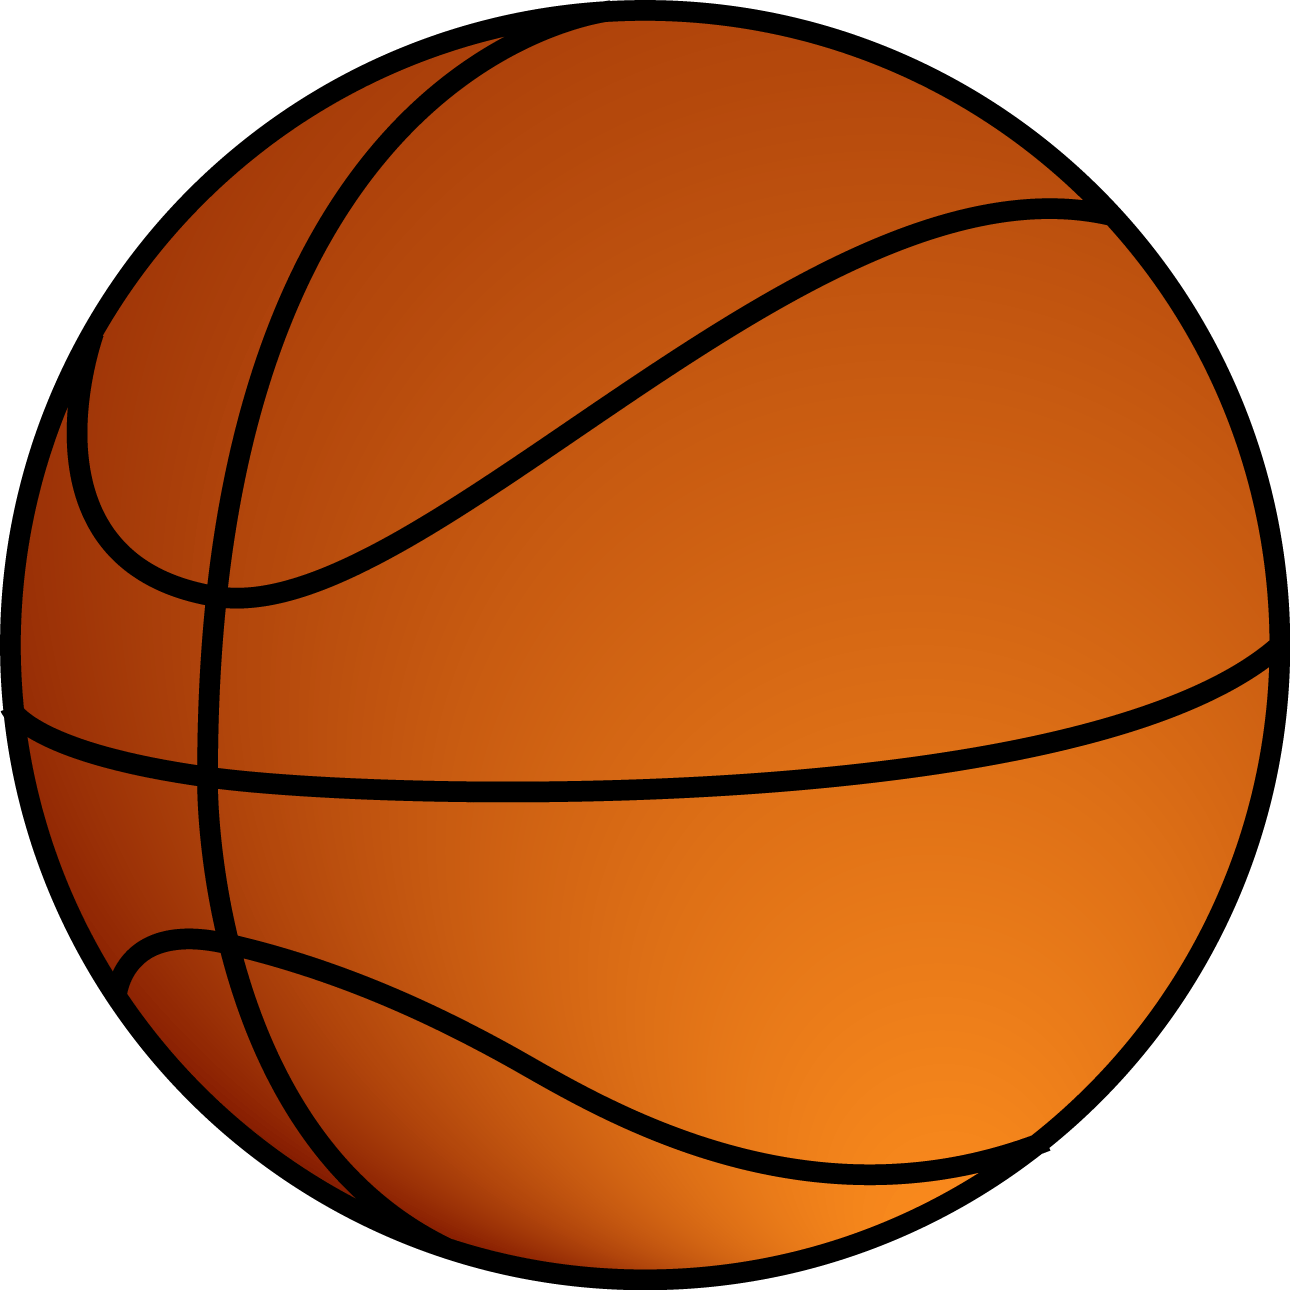 Basketball Ball Basketball Png Transparent Basketball Png Images Pluspng